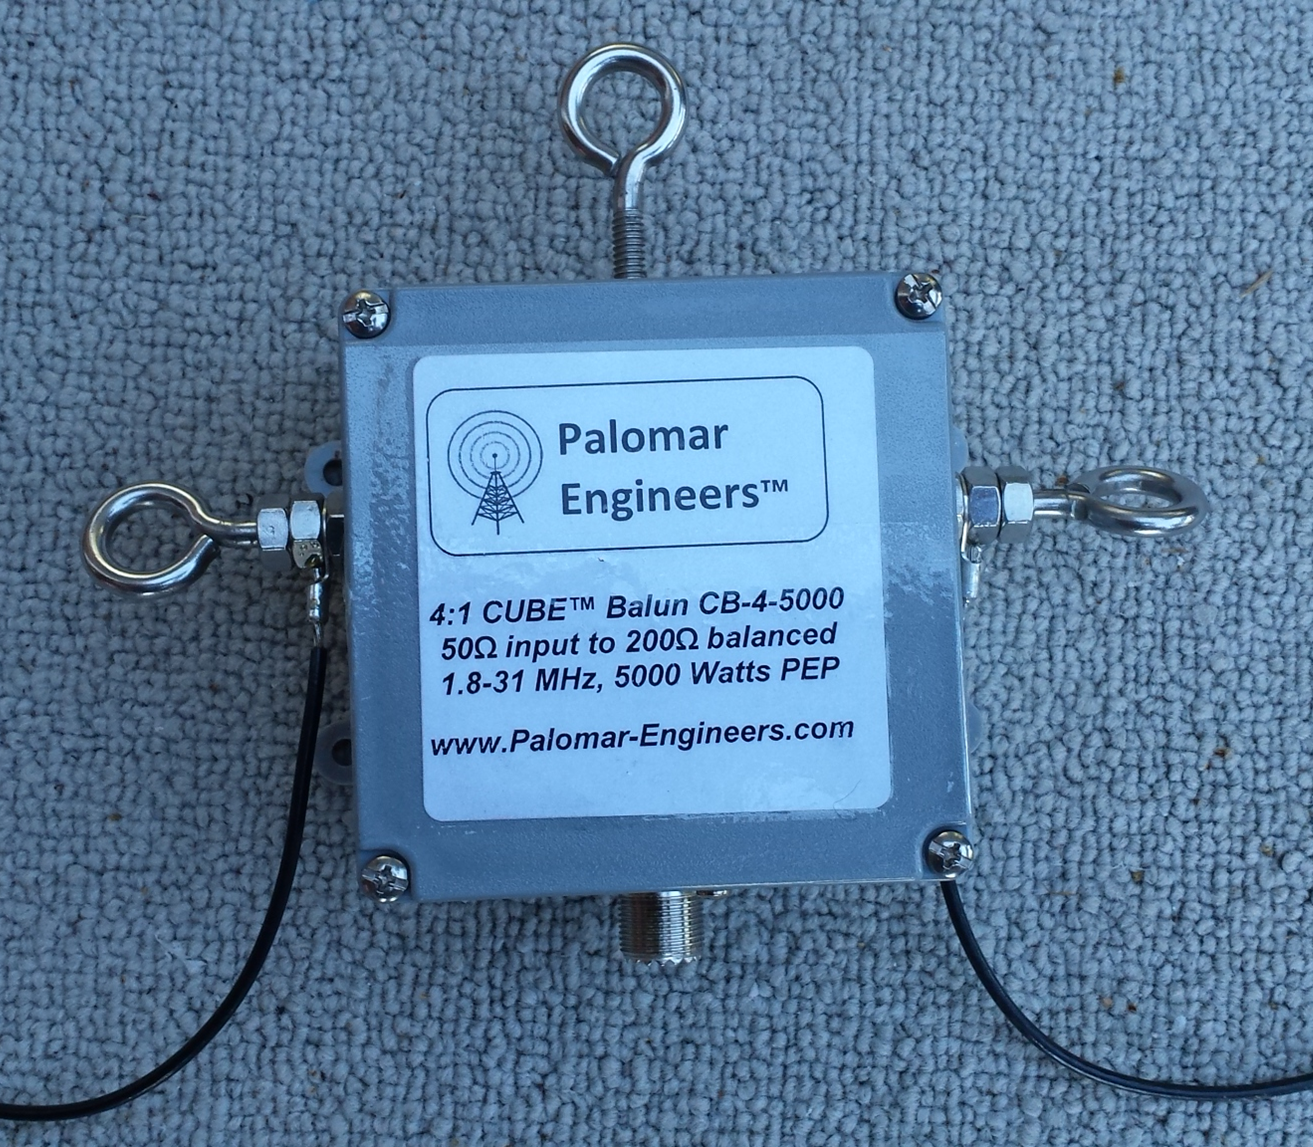 1200485183 - Antenna Products